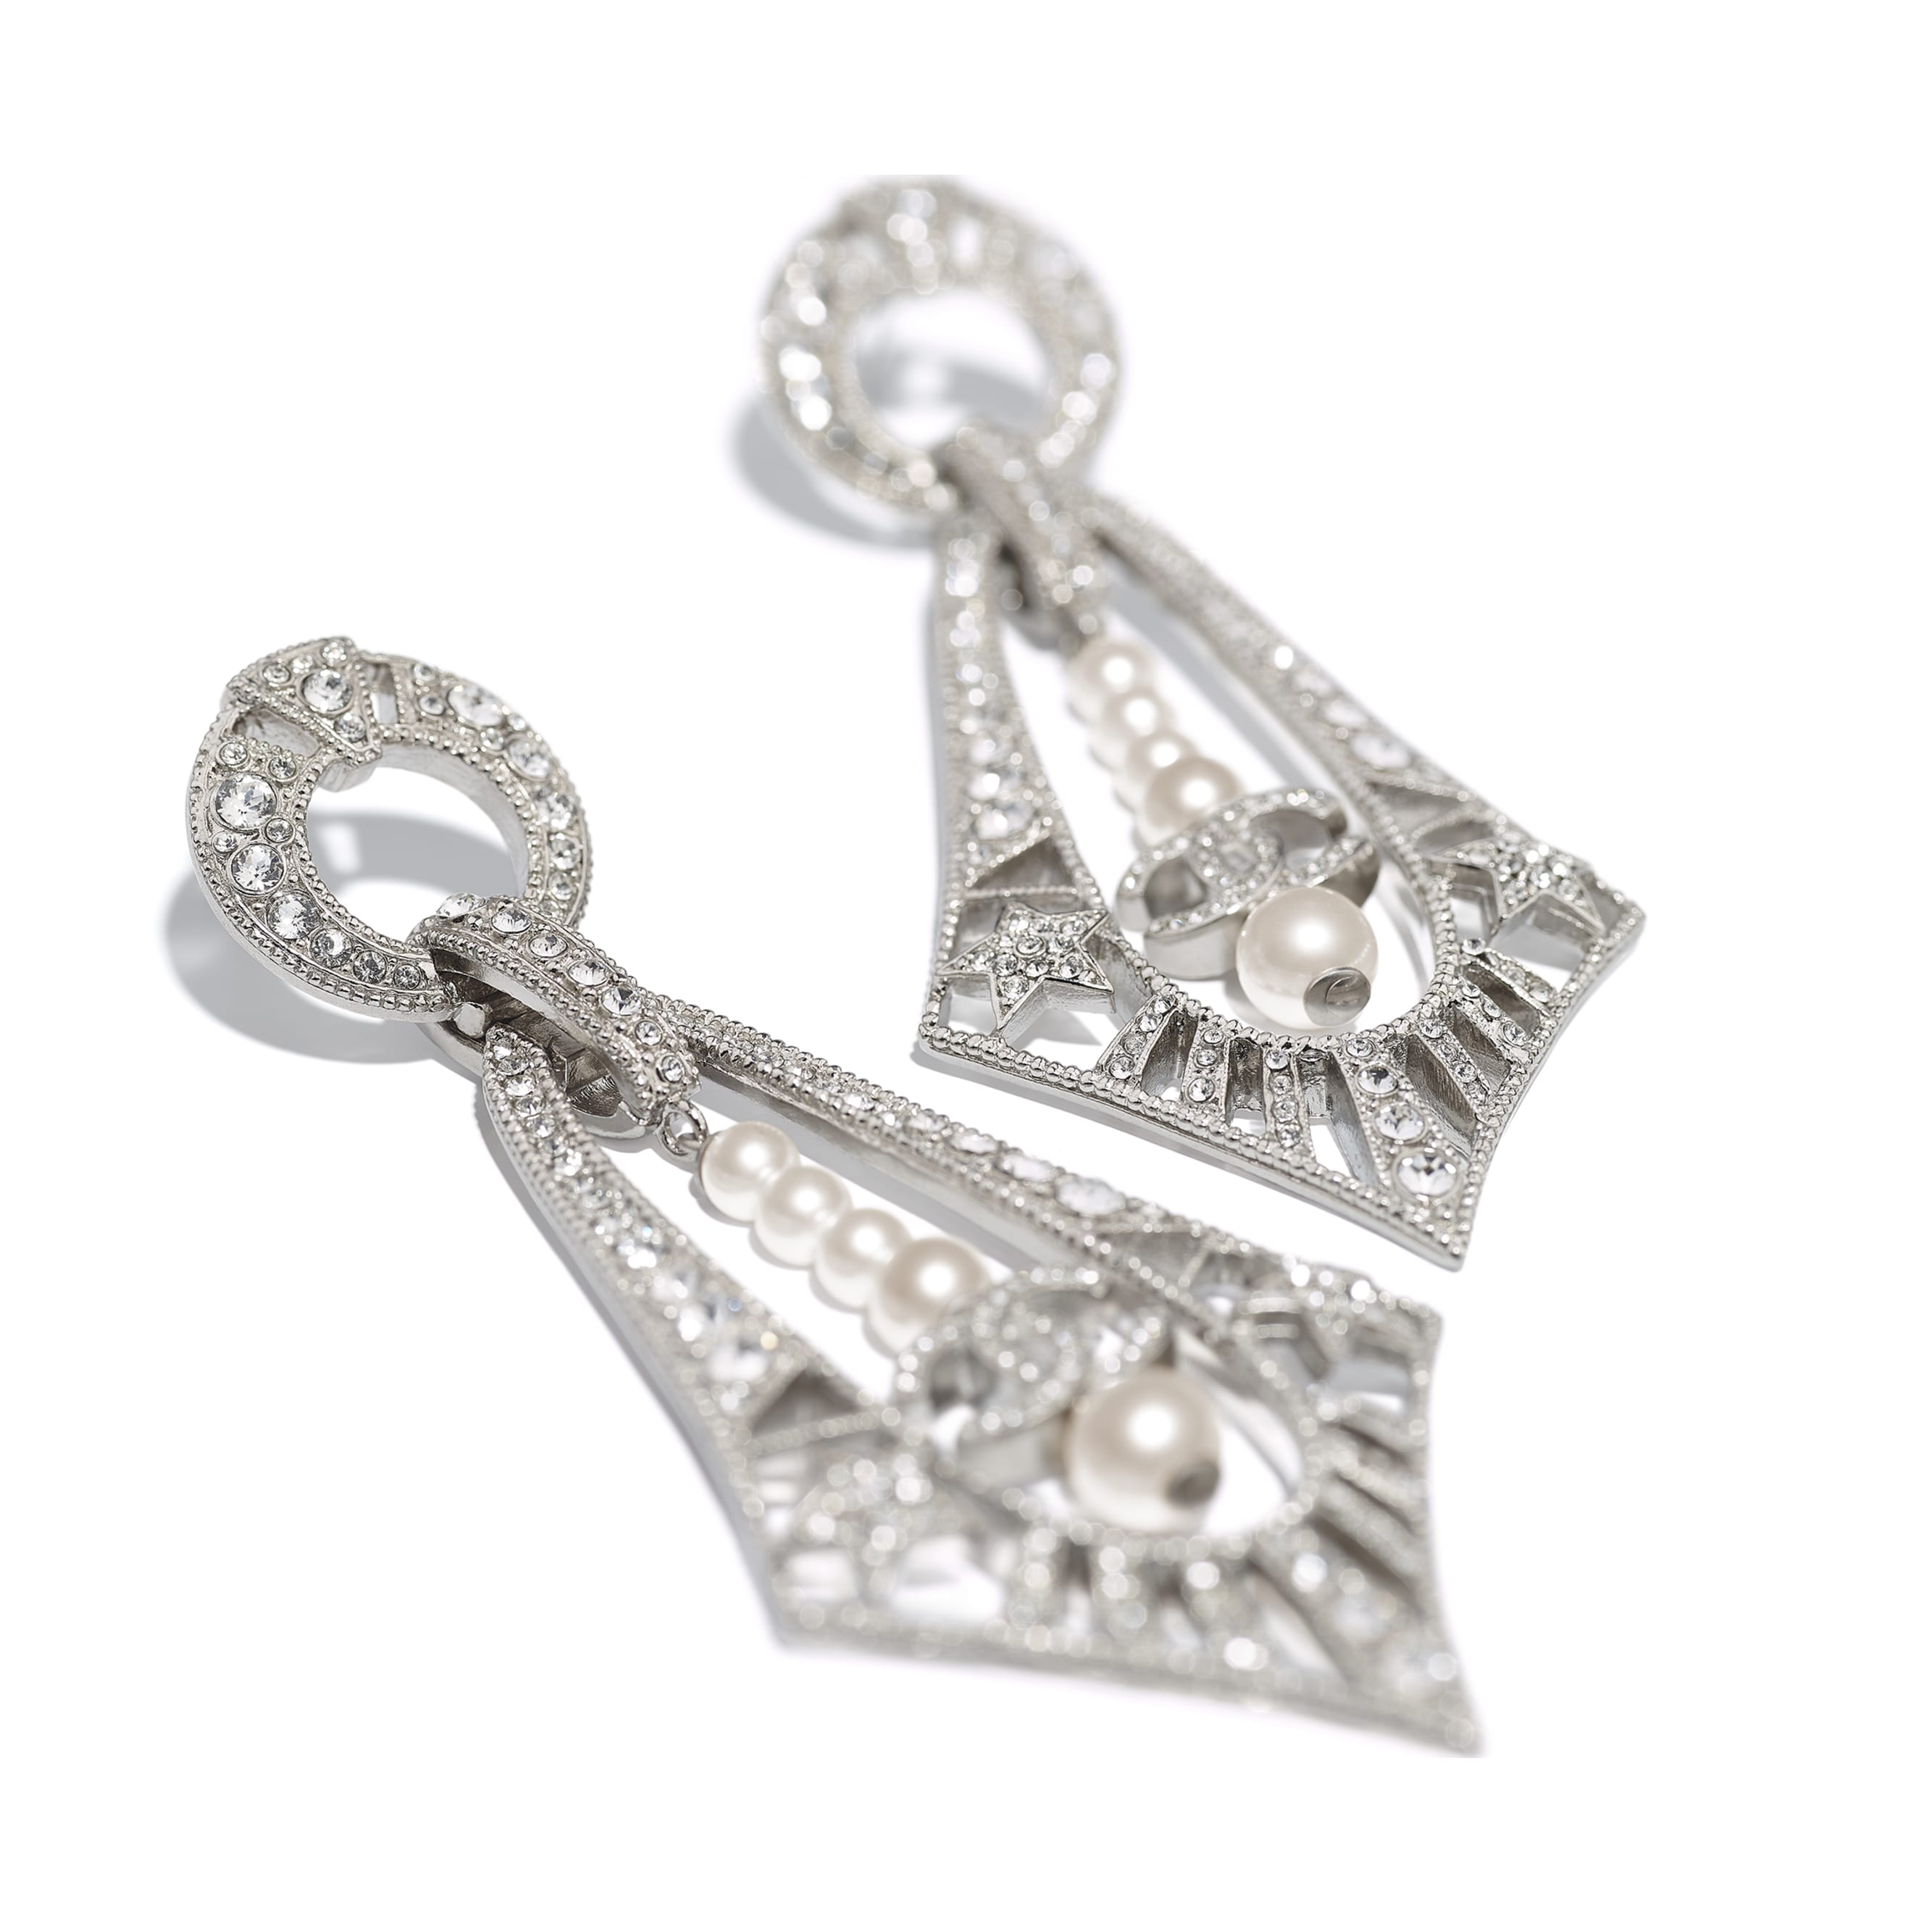 Earrings - Silver, Pearly White & Crystal - Metal, Glass Pearls & Strass - CHANEL - Alternative view - see standard sized version